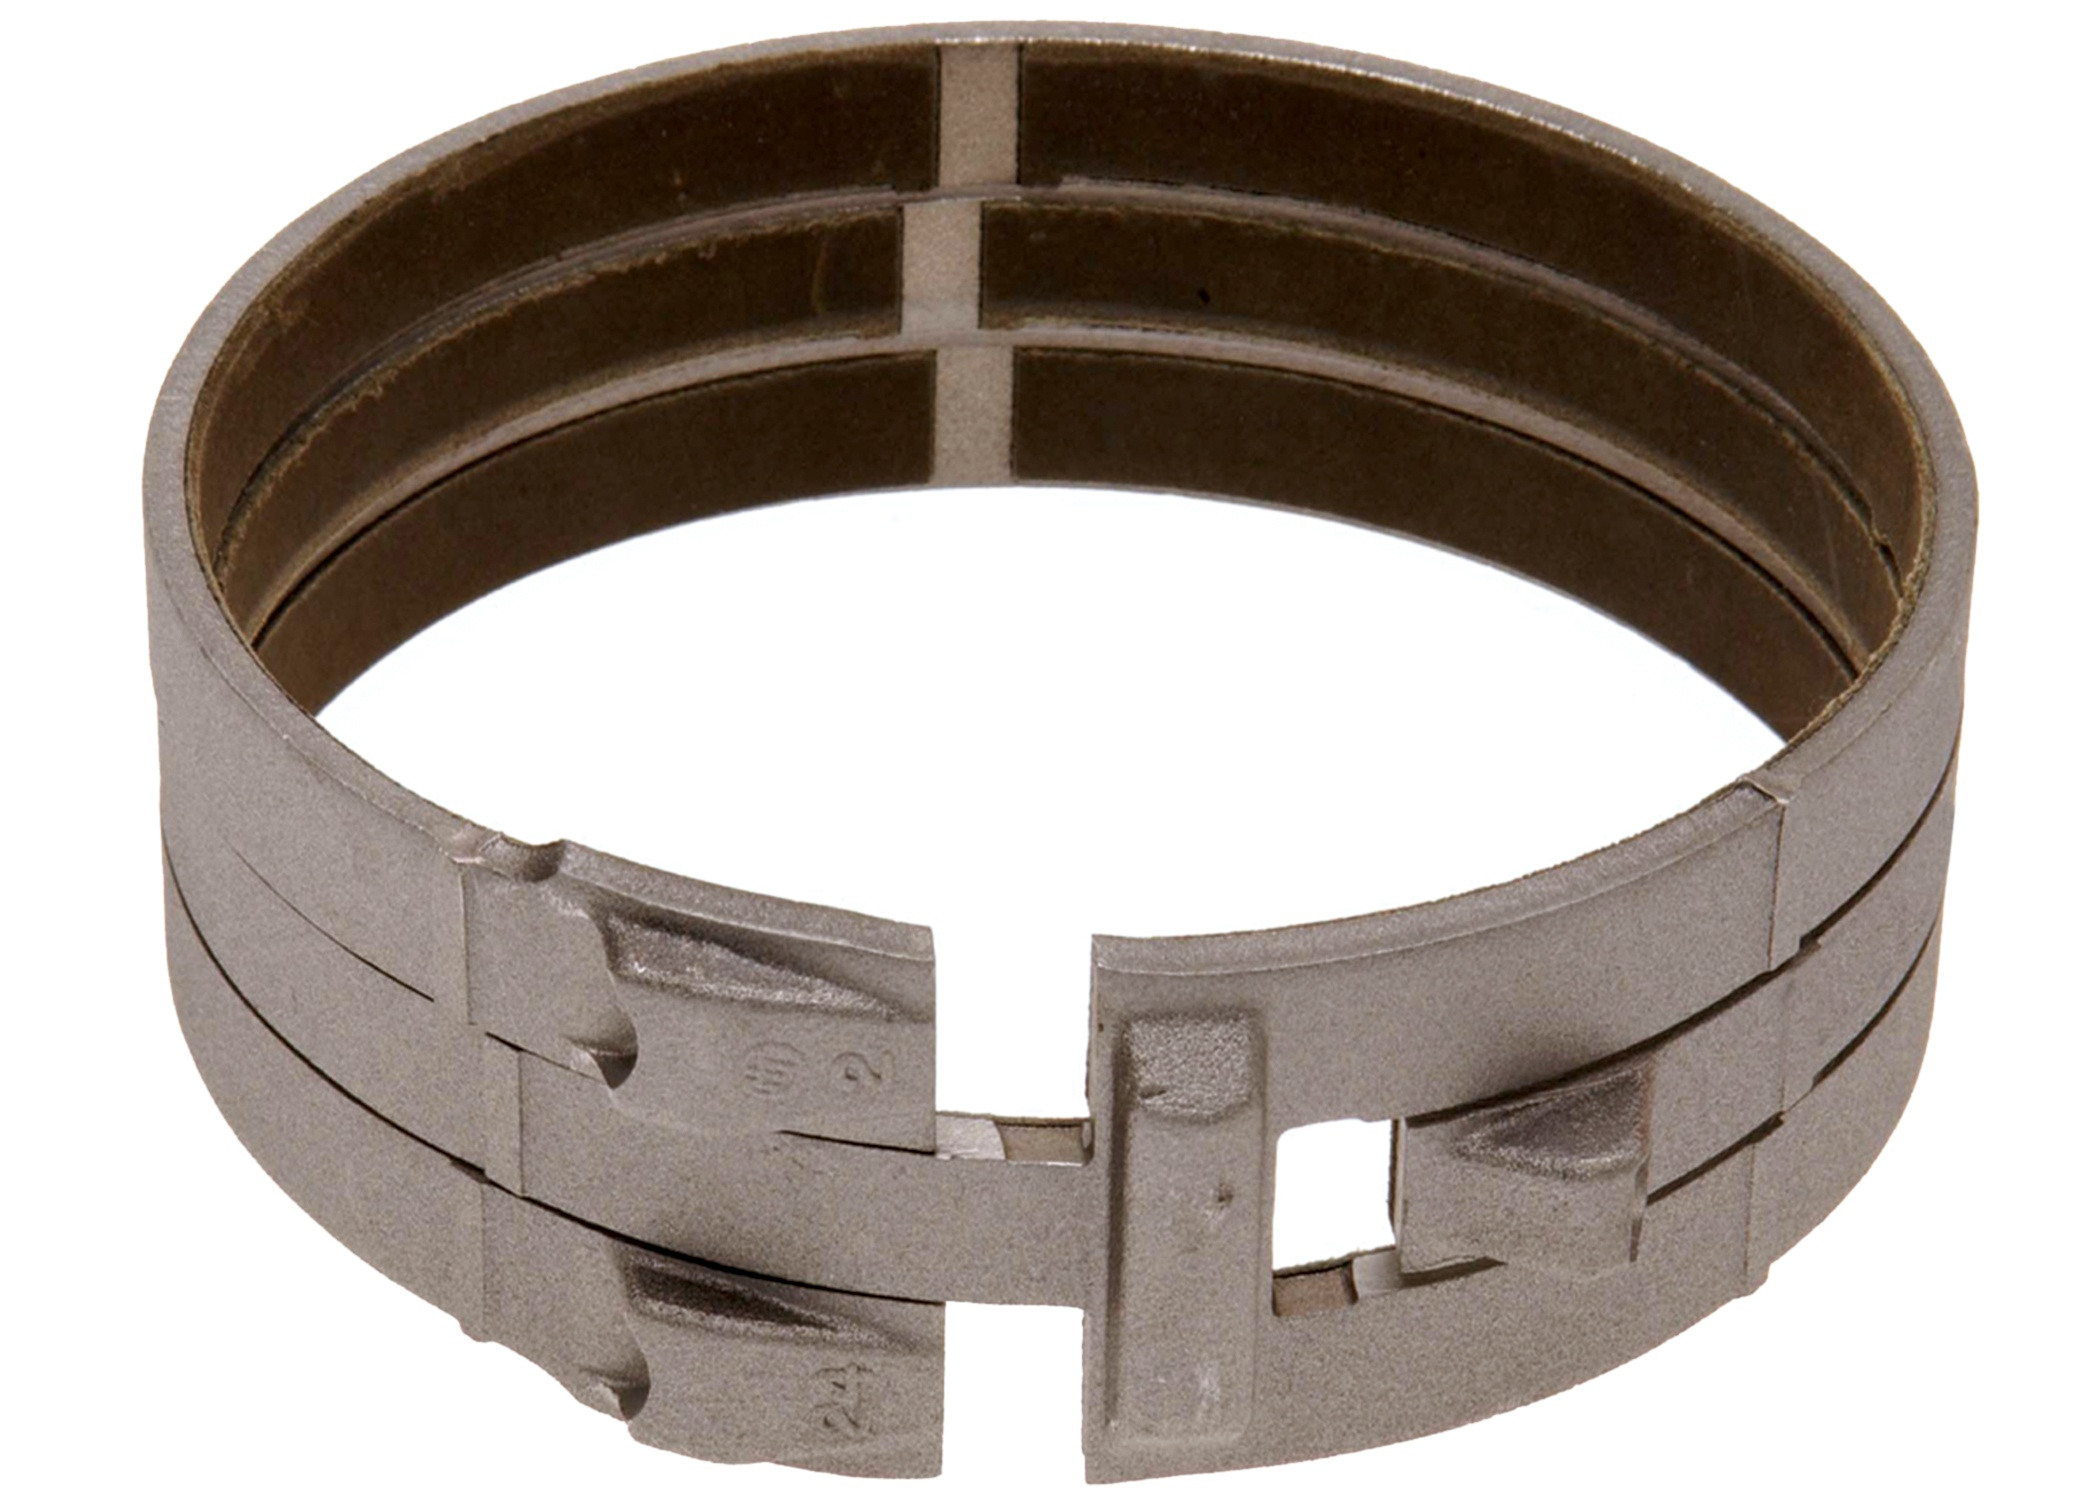 ACDELCO GM ORIGINAL EQUIPMENT - Automatic Transmission Band - DCB 24202229